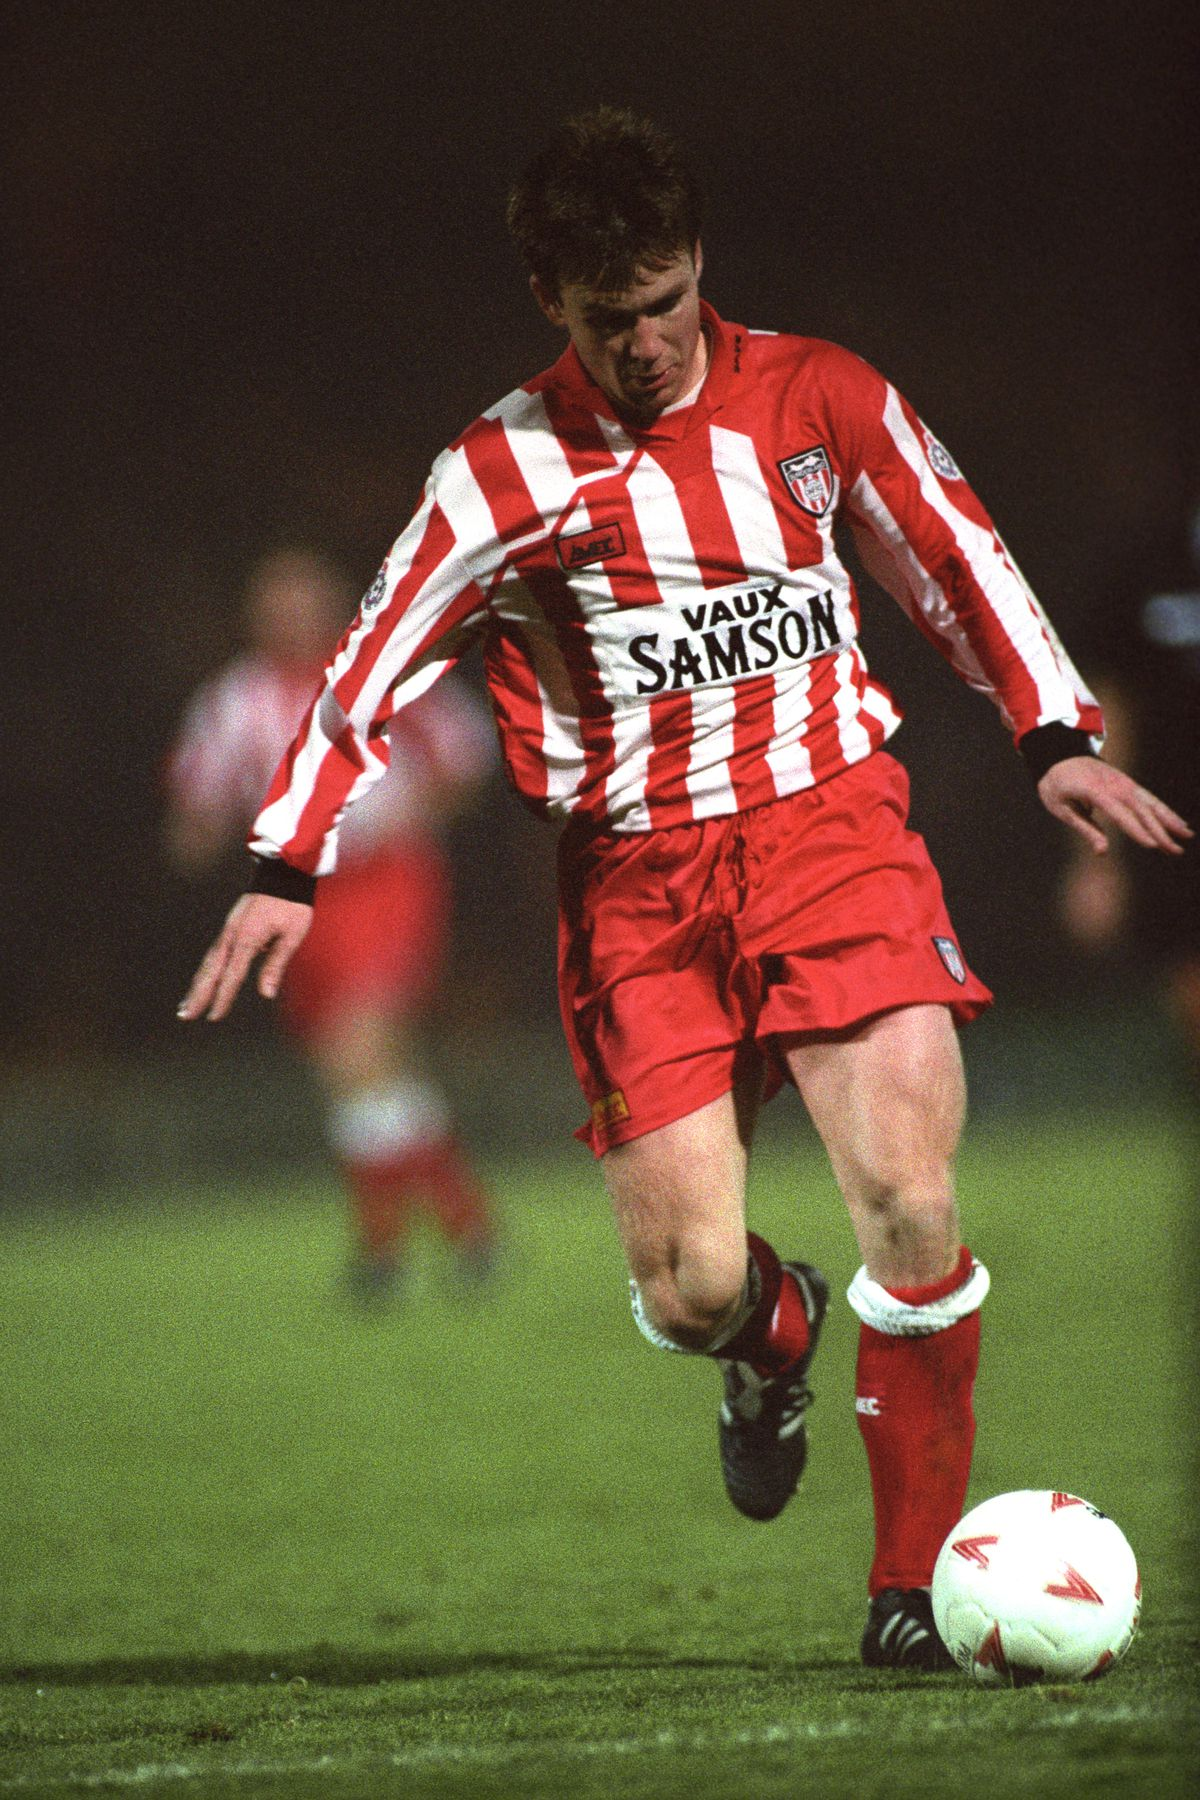 Soccer - First Division - Sunderland - Craig Russell